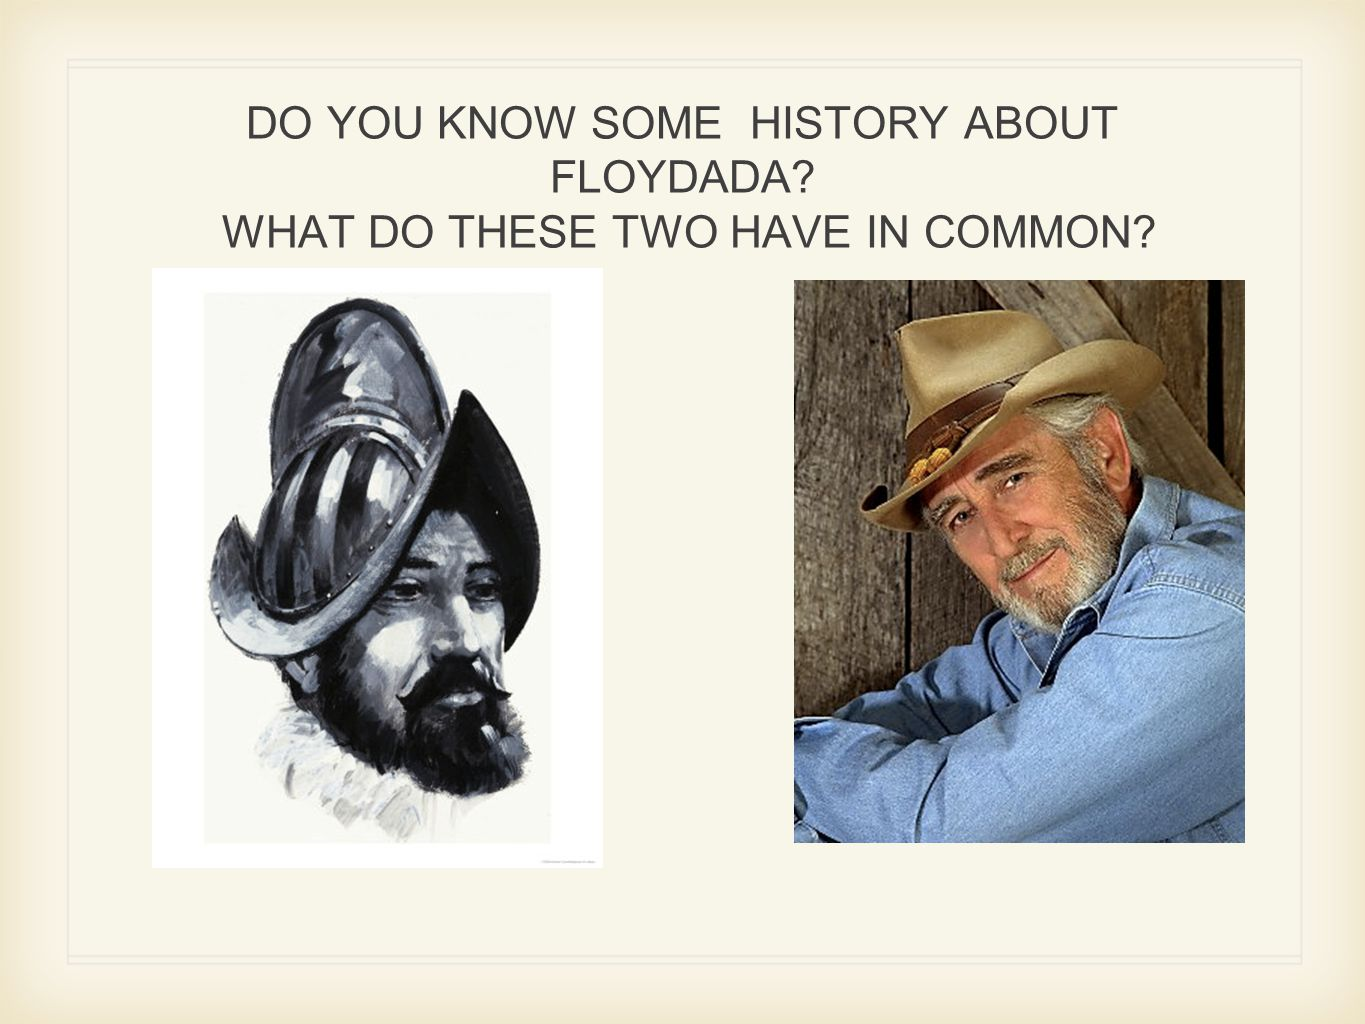 DO YOU KNOW SOME HISTORY ABOUT FLOYDADA? WHAT DO THESE TWO HAVE IN COMMON? F